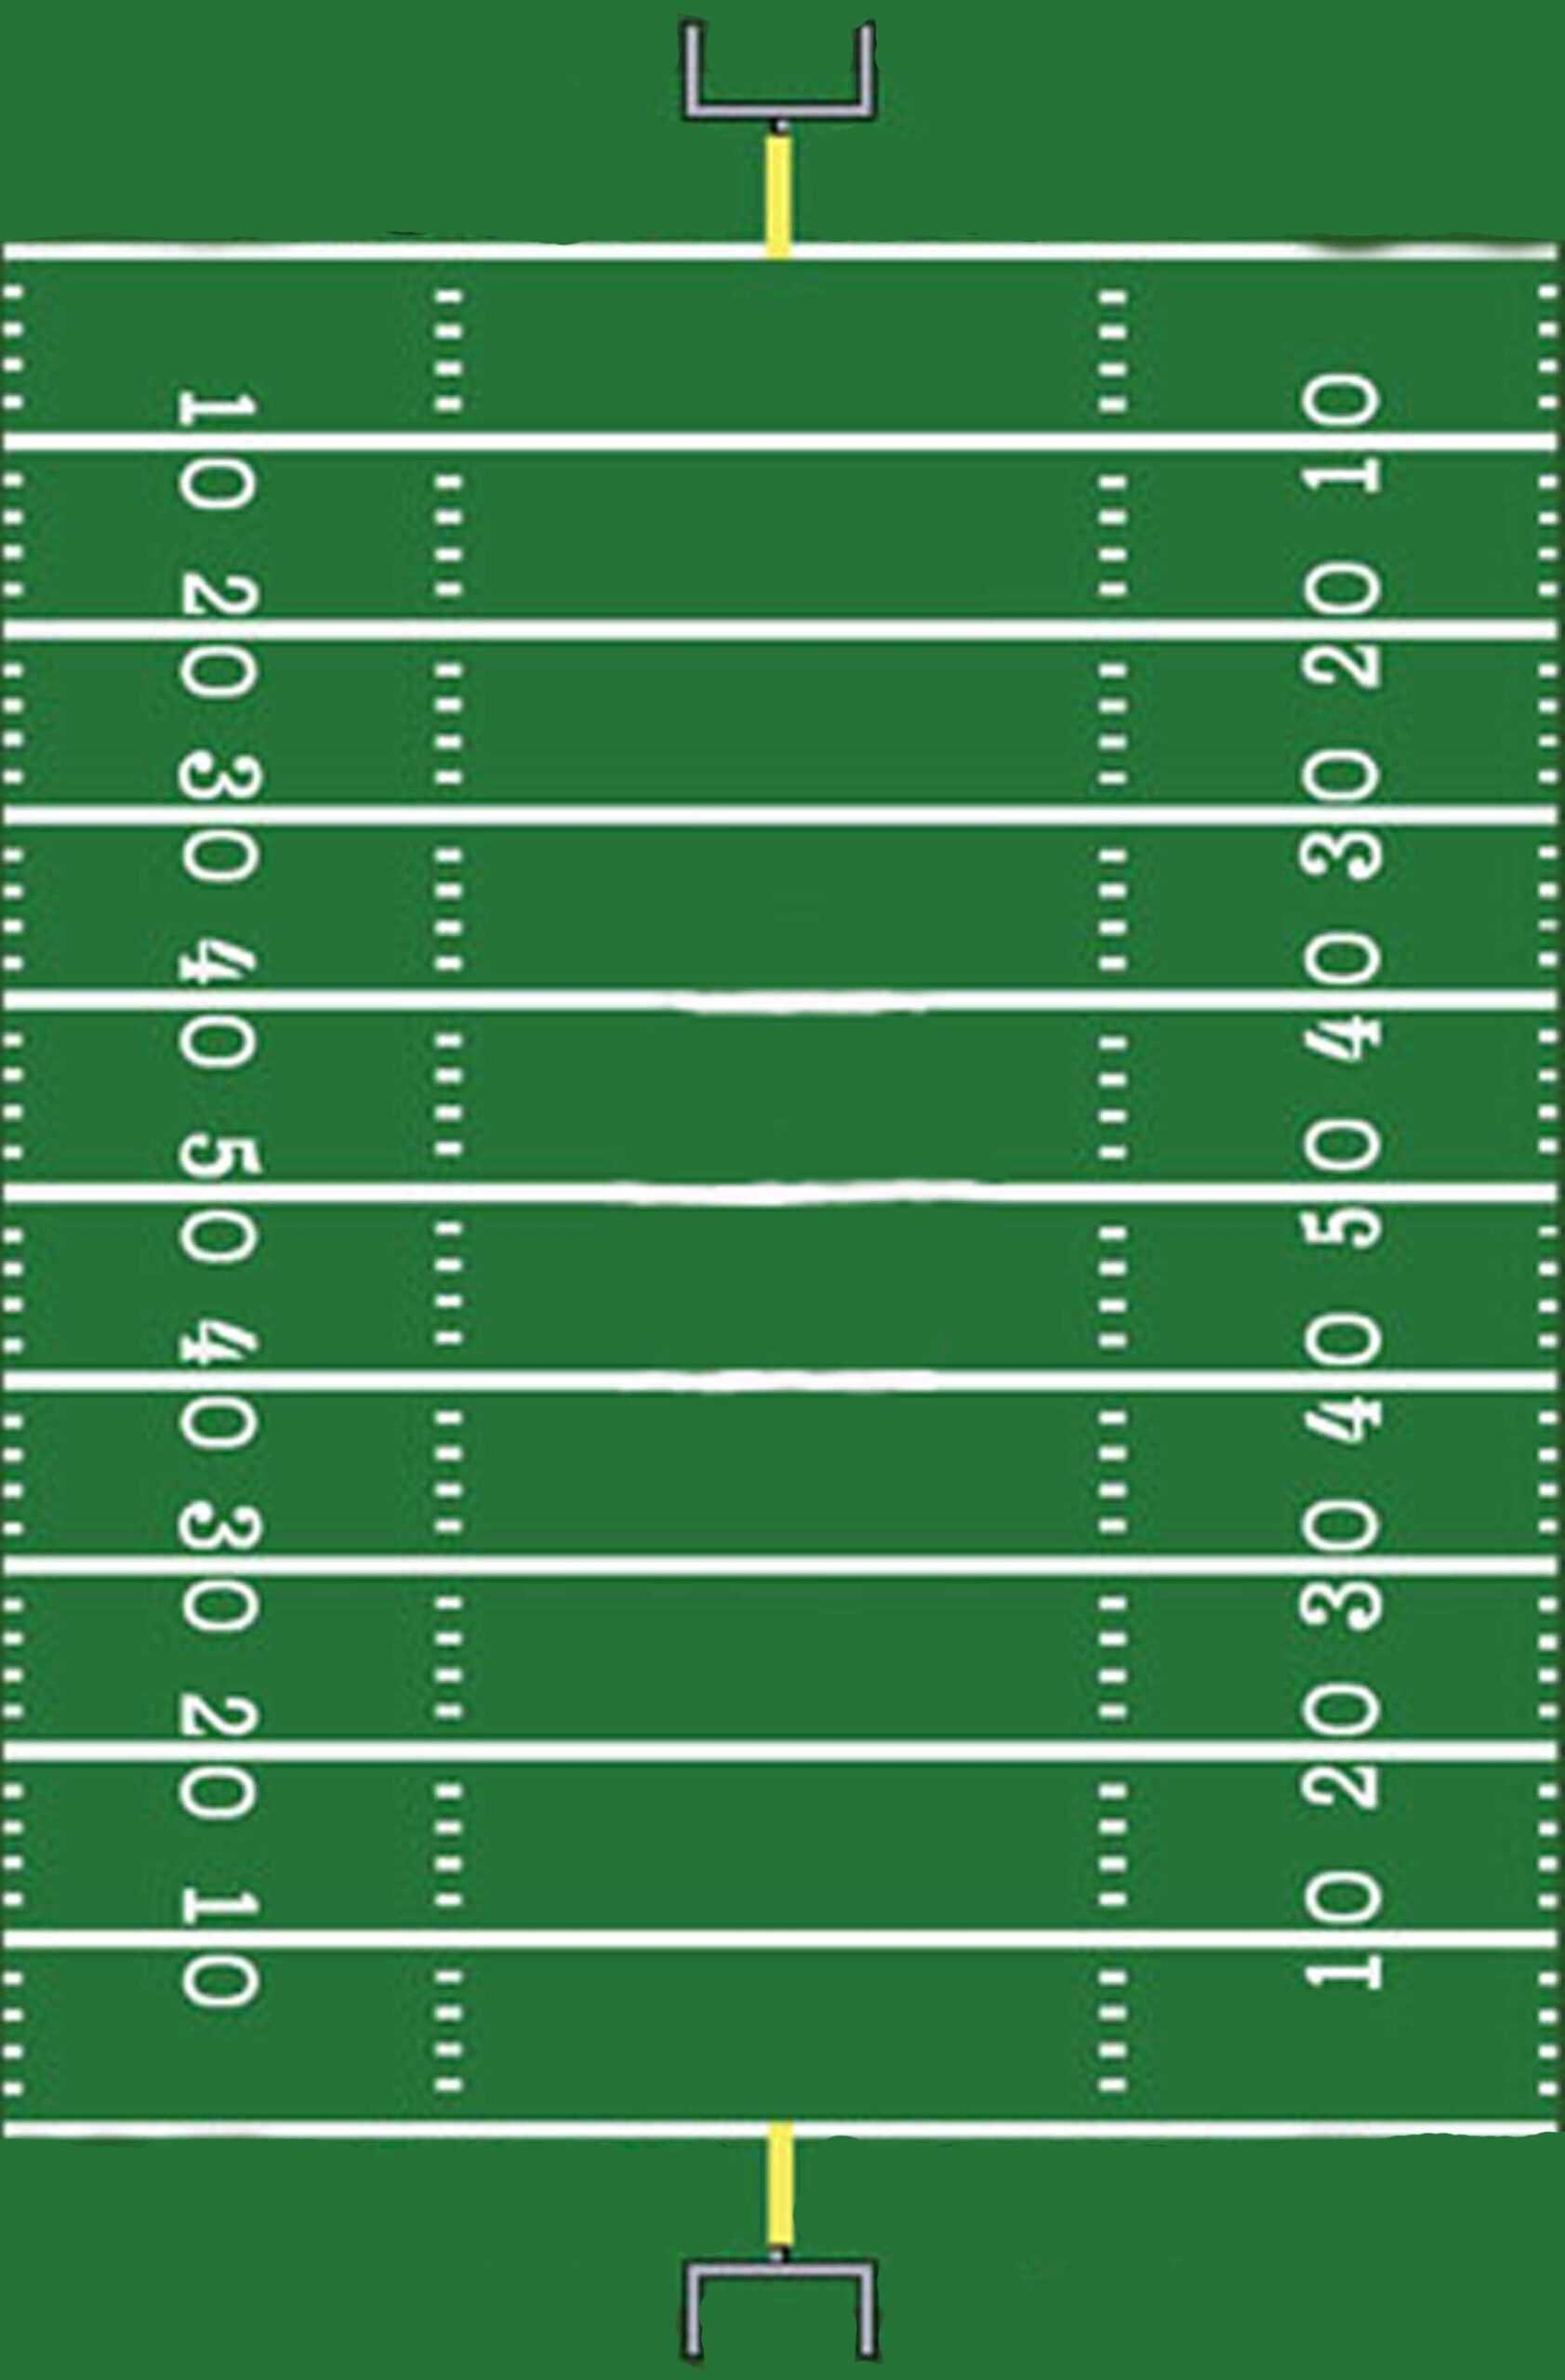 Football Field Template I Made For A Sign | Football Field With Blank Football Field Template